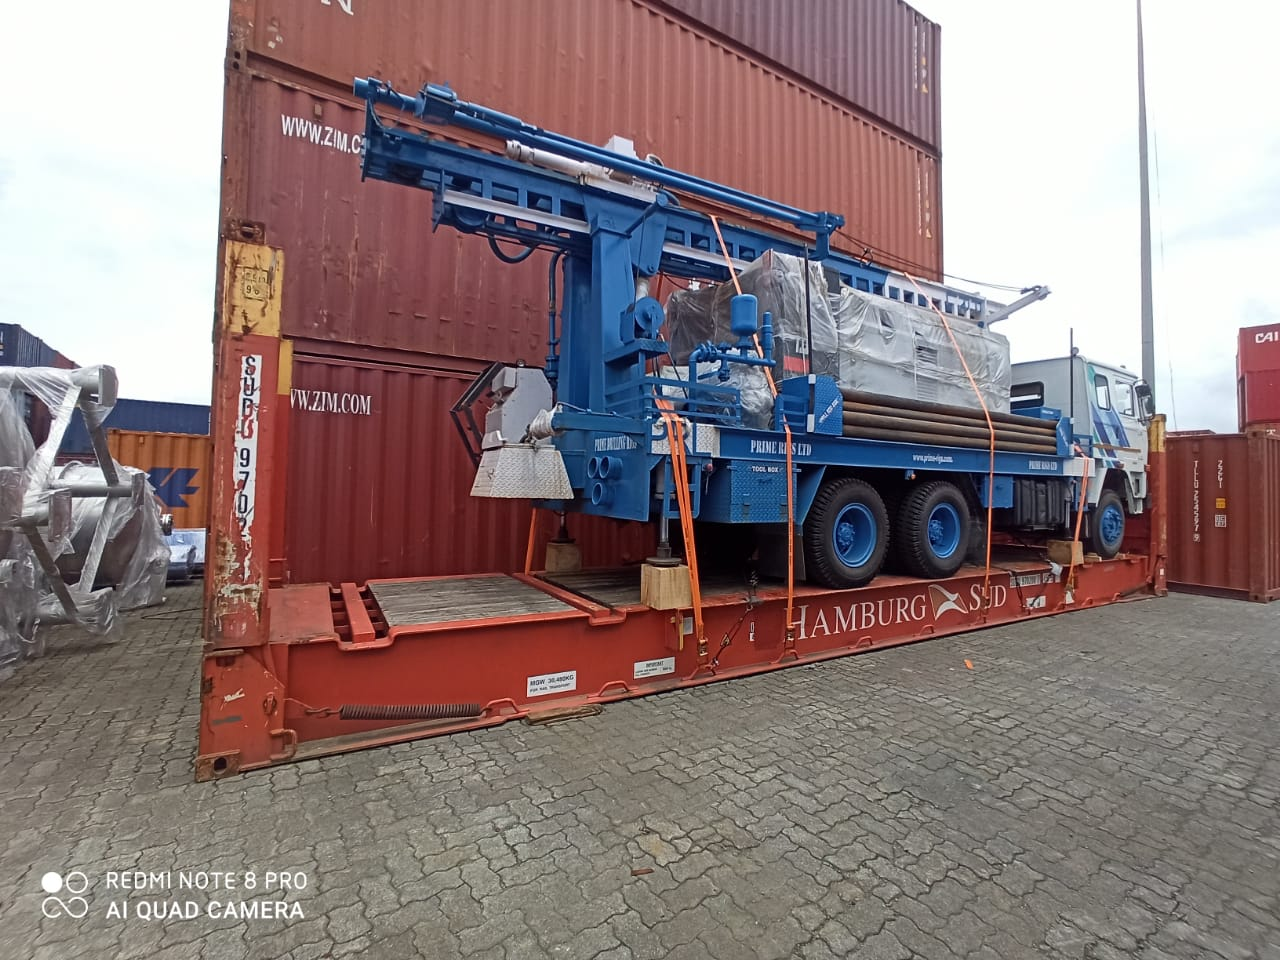 PDTHR-400 TRUCK MOUNTED DRILLING RIG